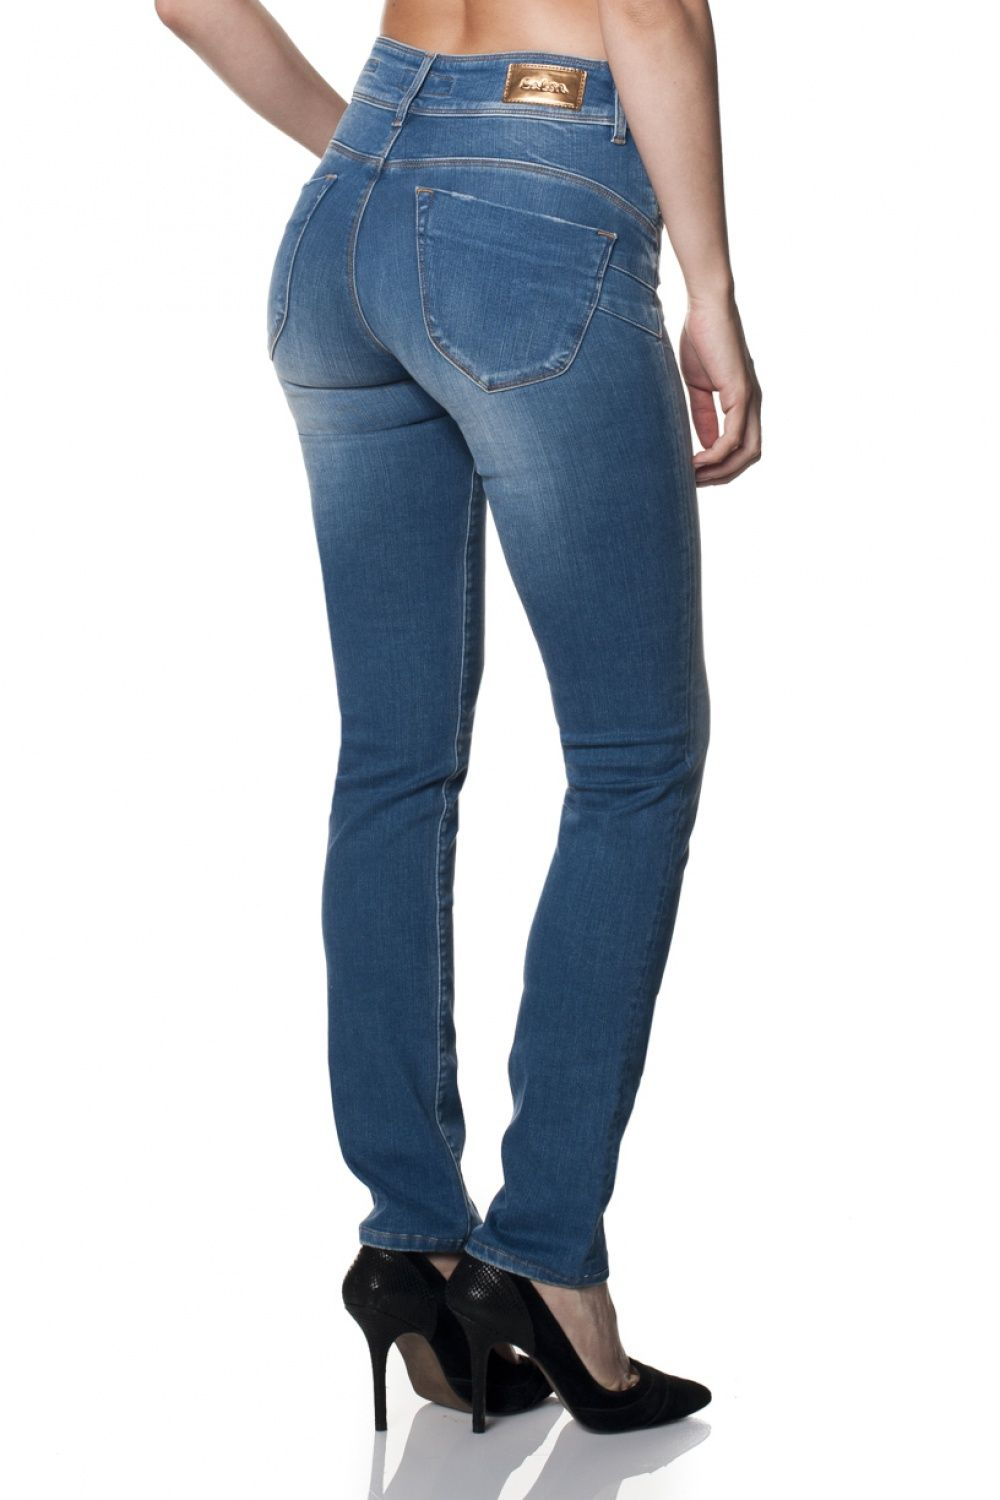 168656a41ed99 Slim-fit Push-In Secret jeans | Salsa Jeans at Hehirs Of Clifden ...